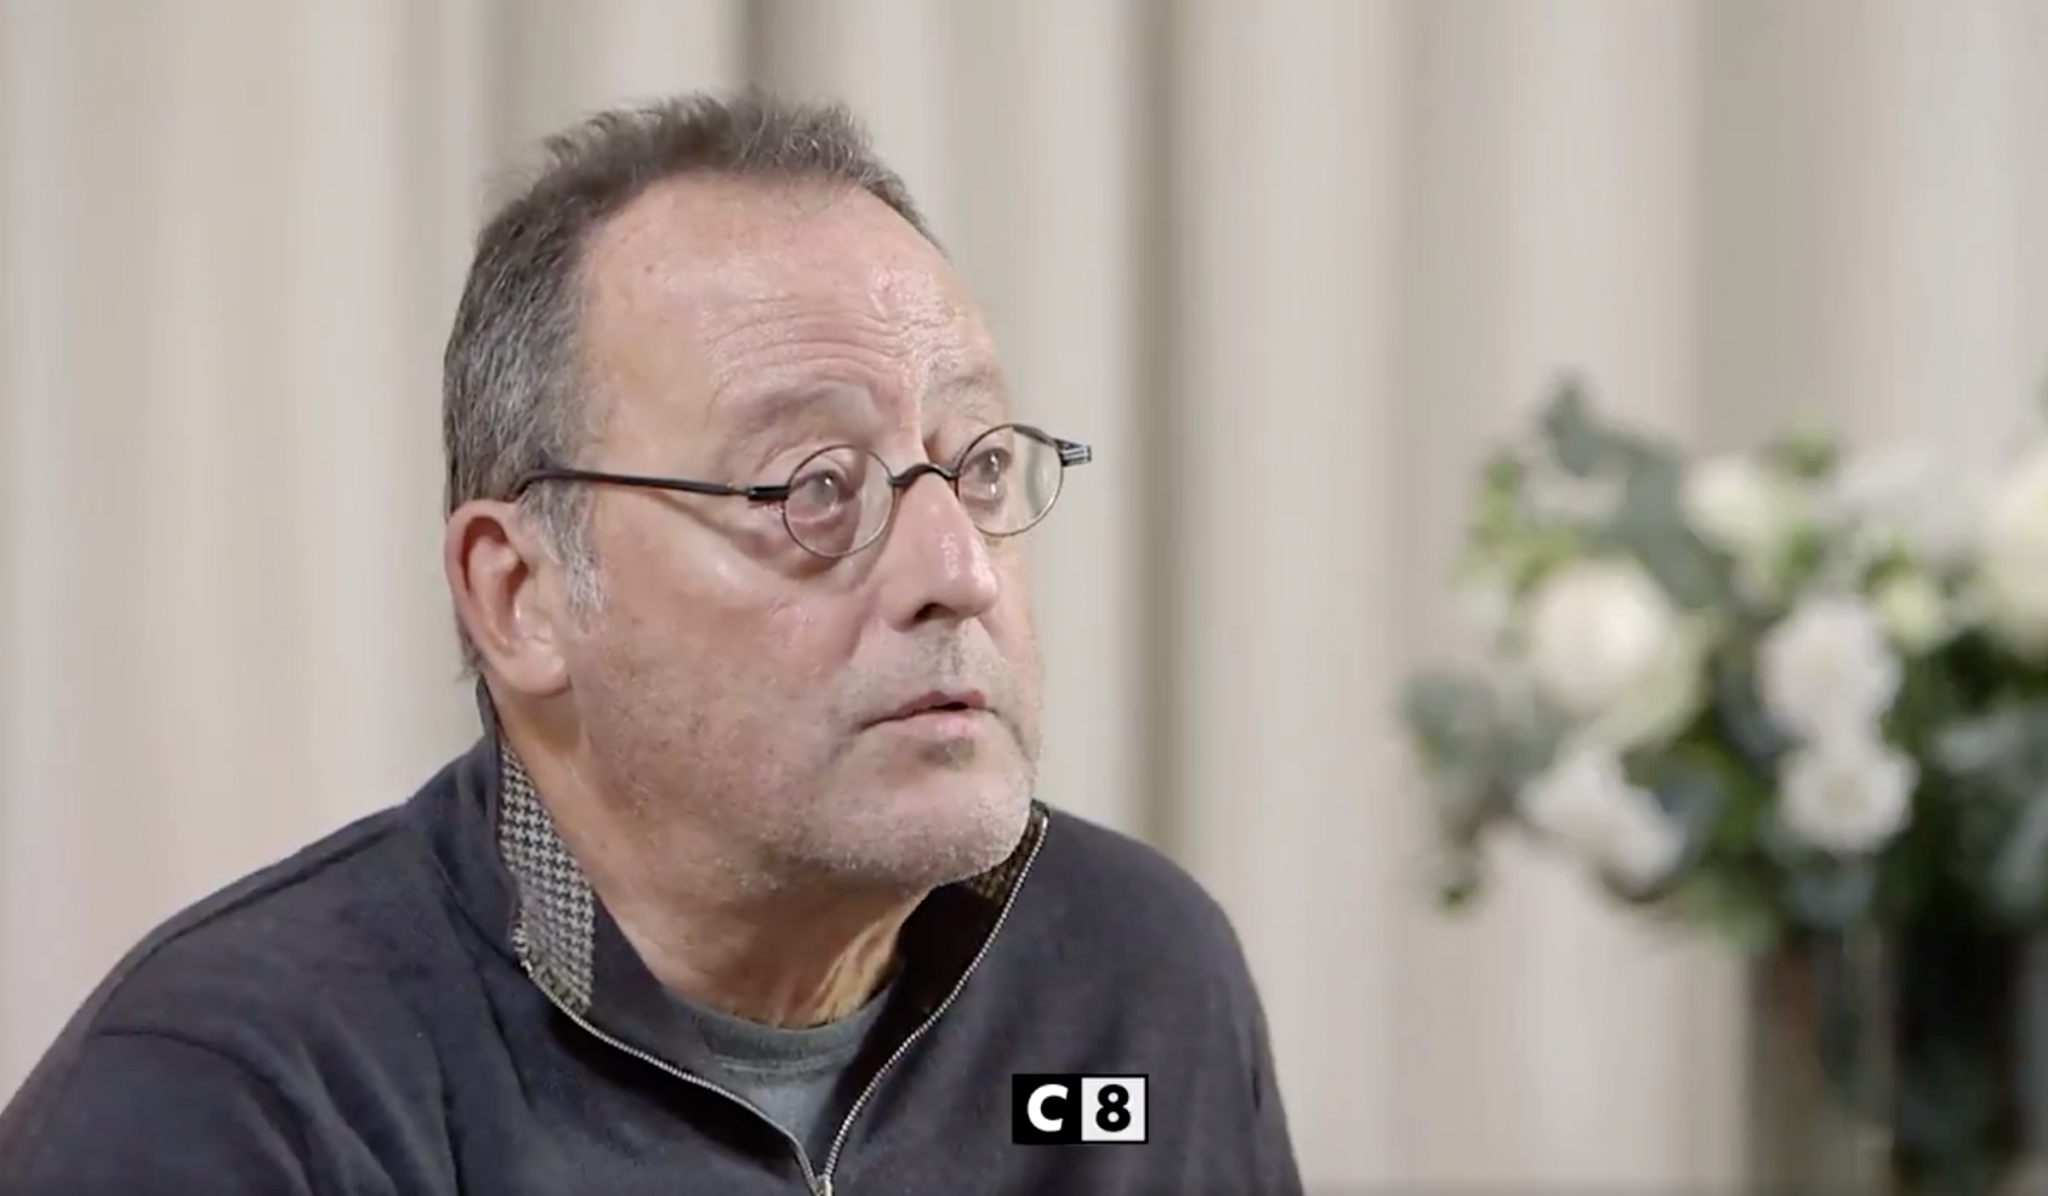 The tears of Jean Reno, who speaks for the first time.